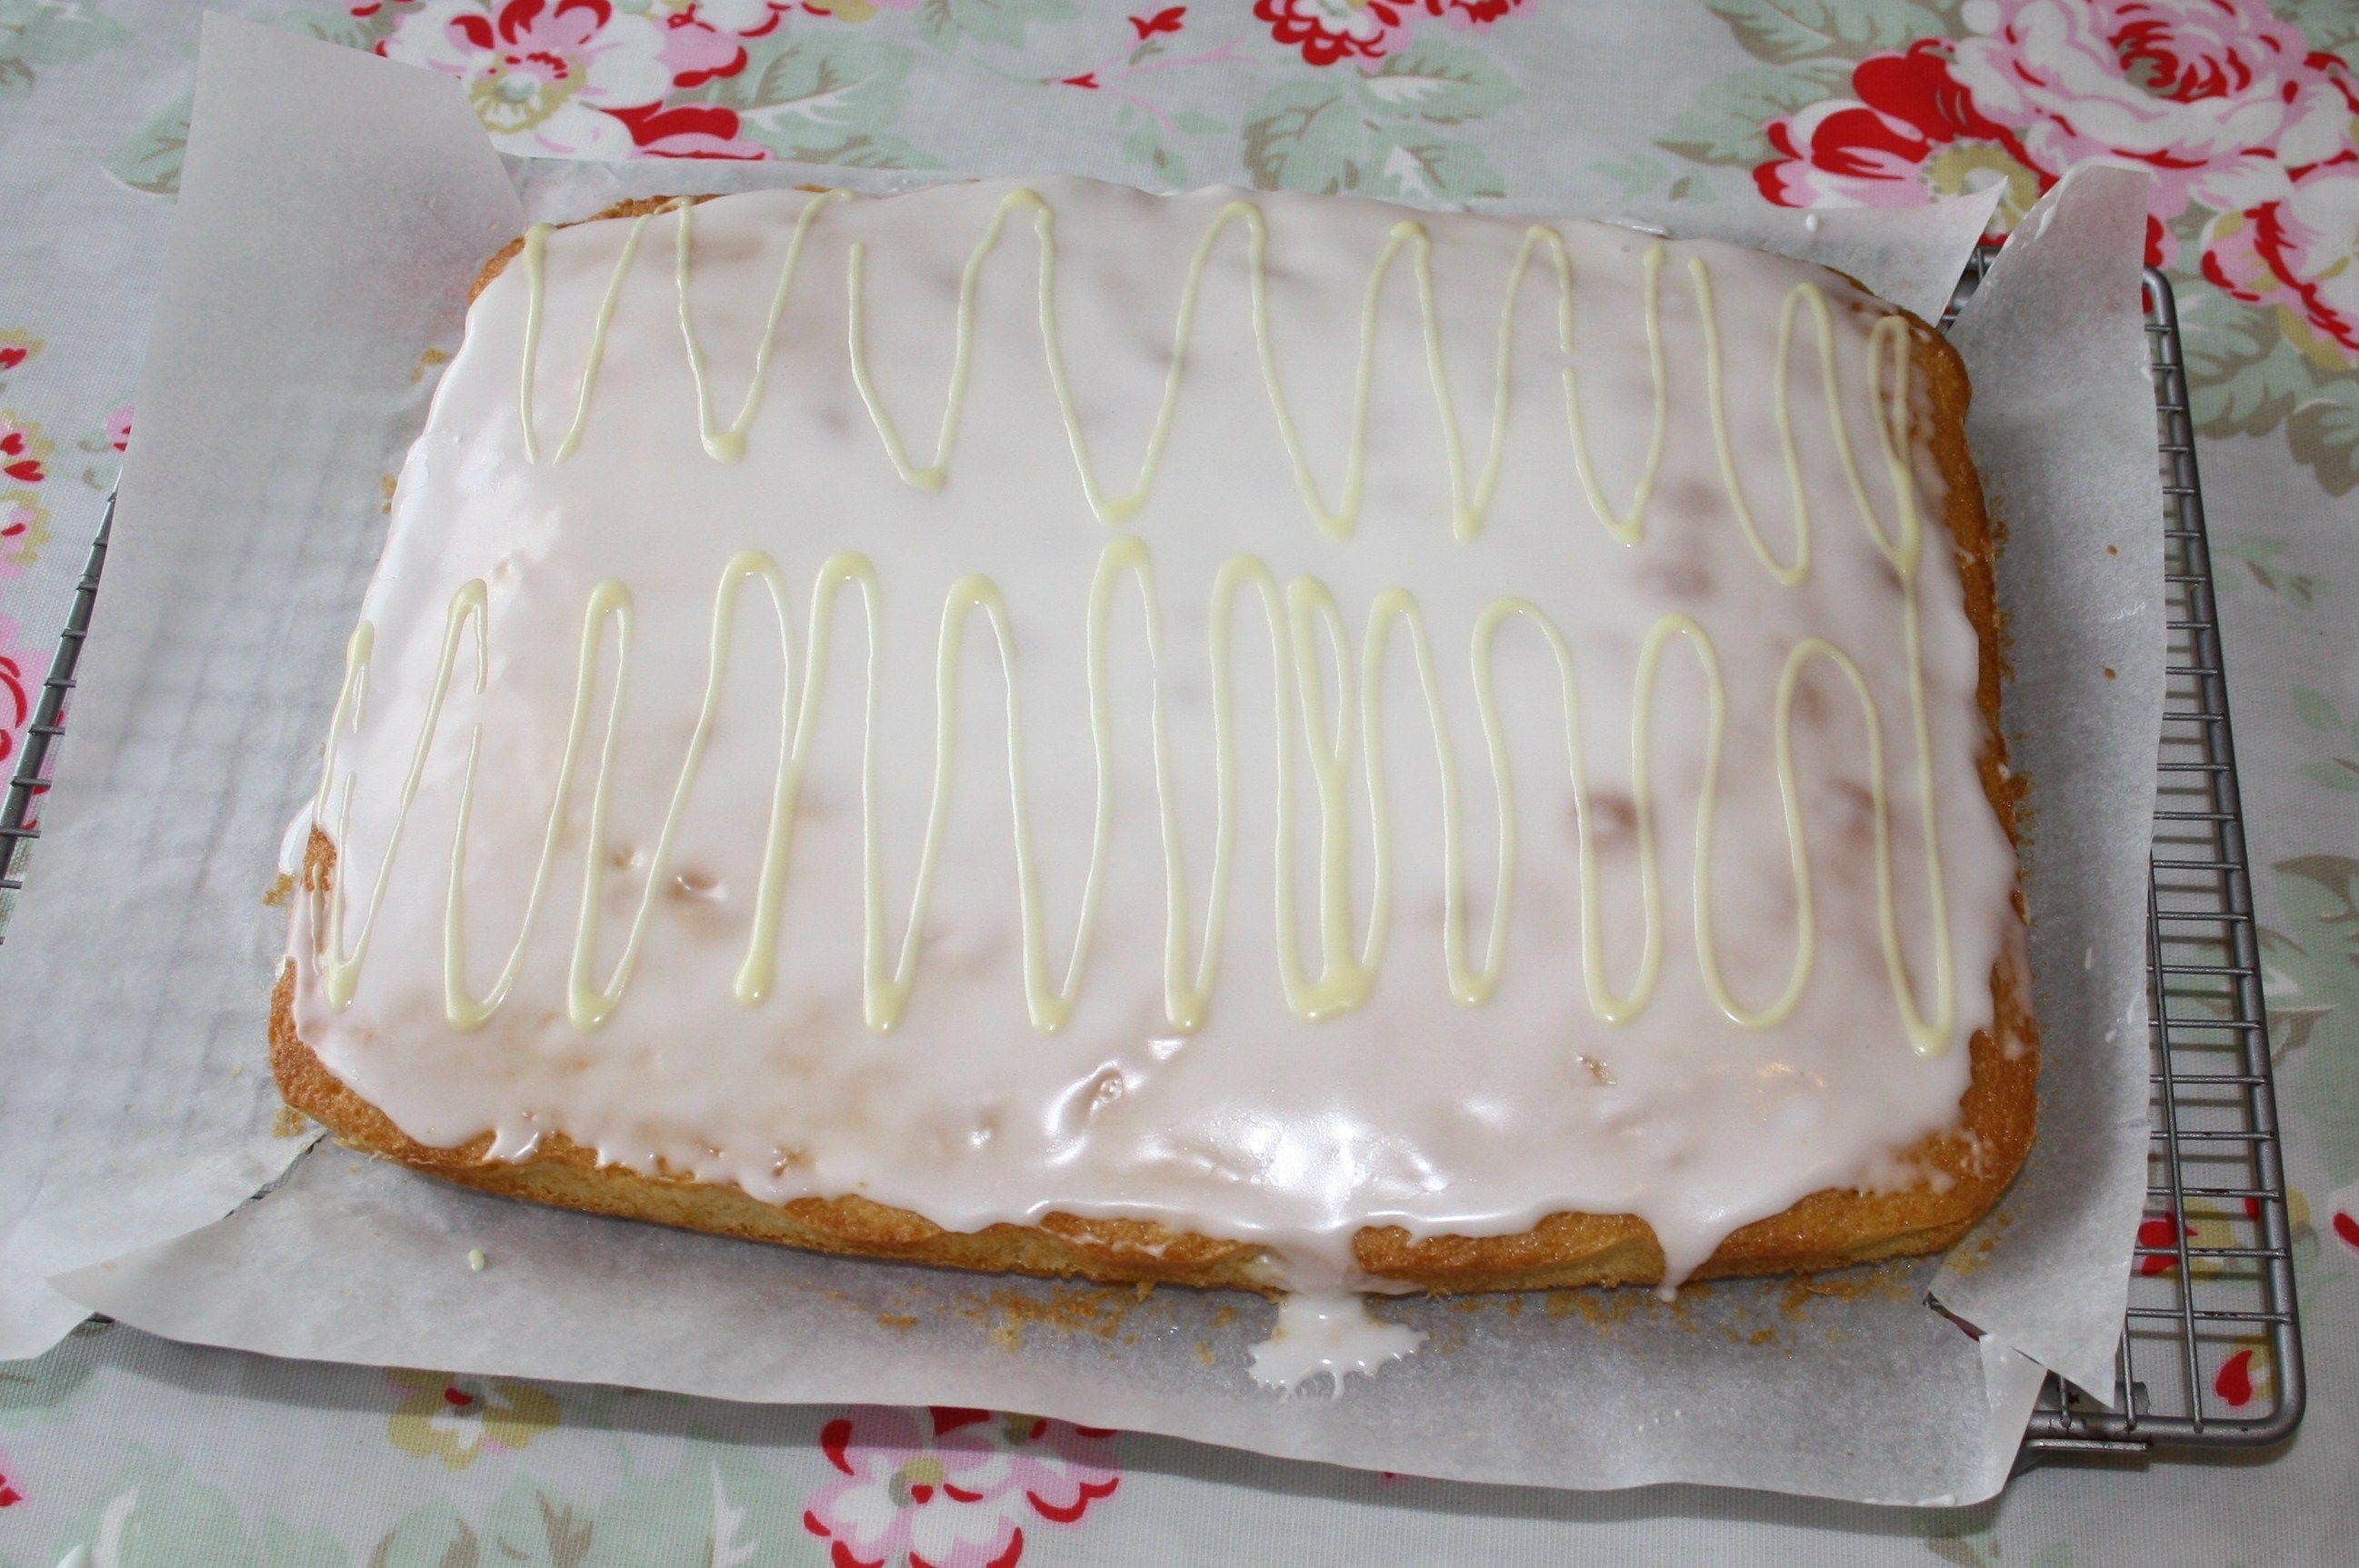 Mary Berry's Lemon traybake. It's sooo light and fluffy. I'm making it again this weekend!